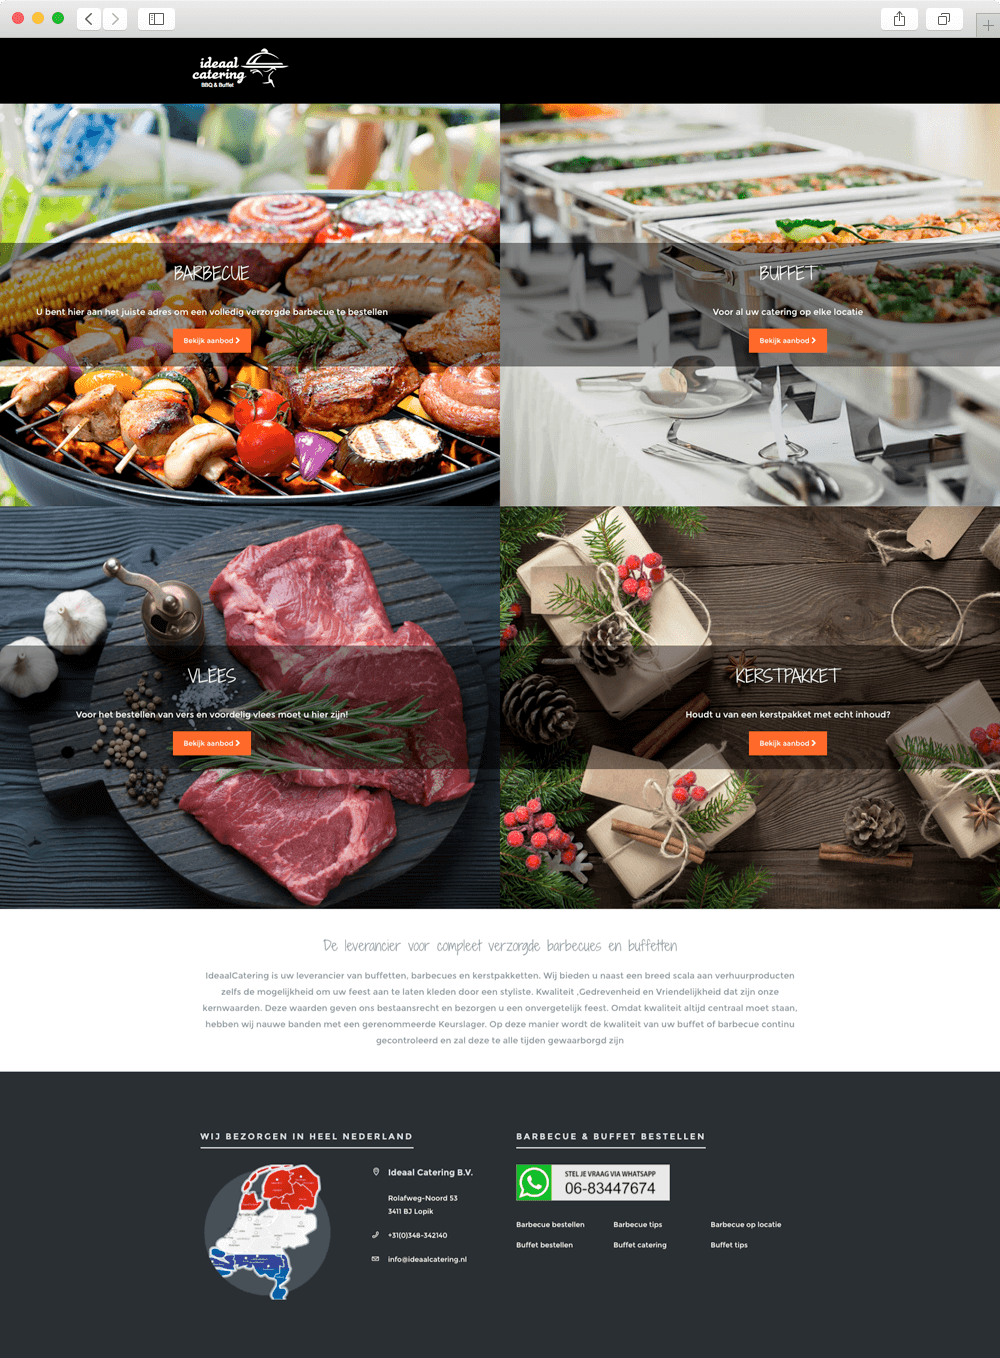 ideaal_catering_page_green_creatives_01